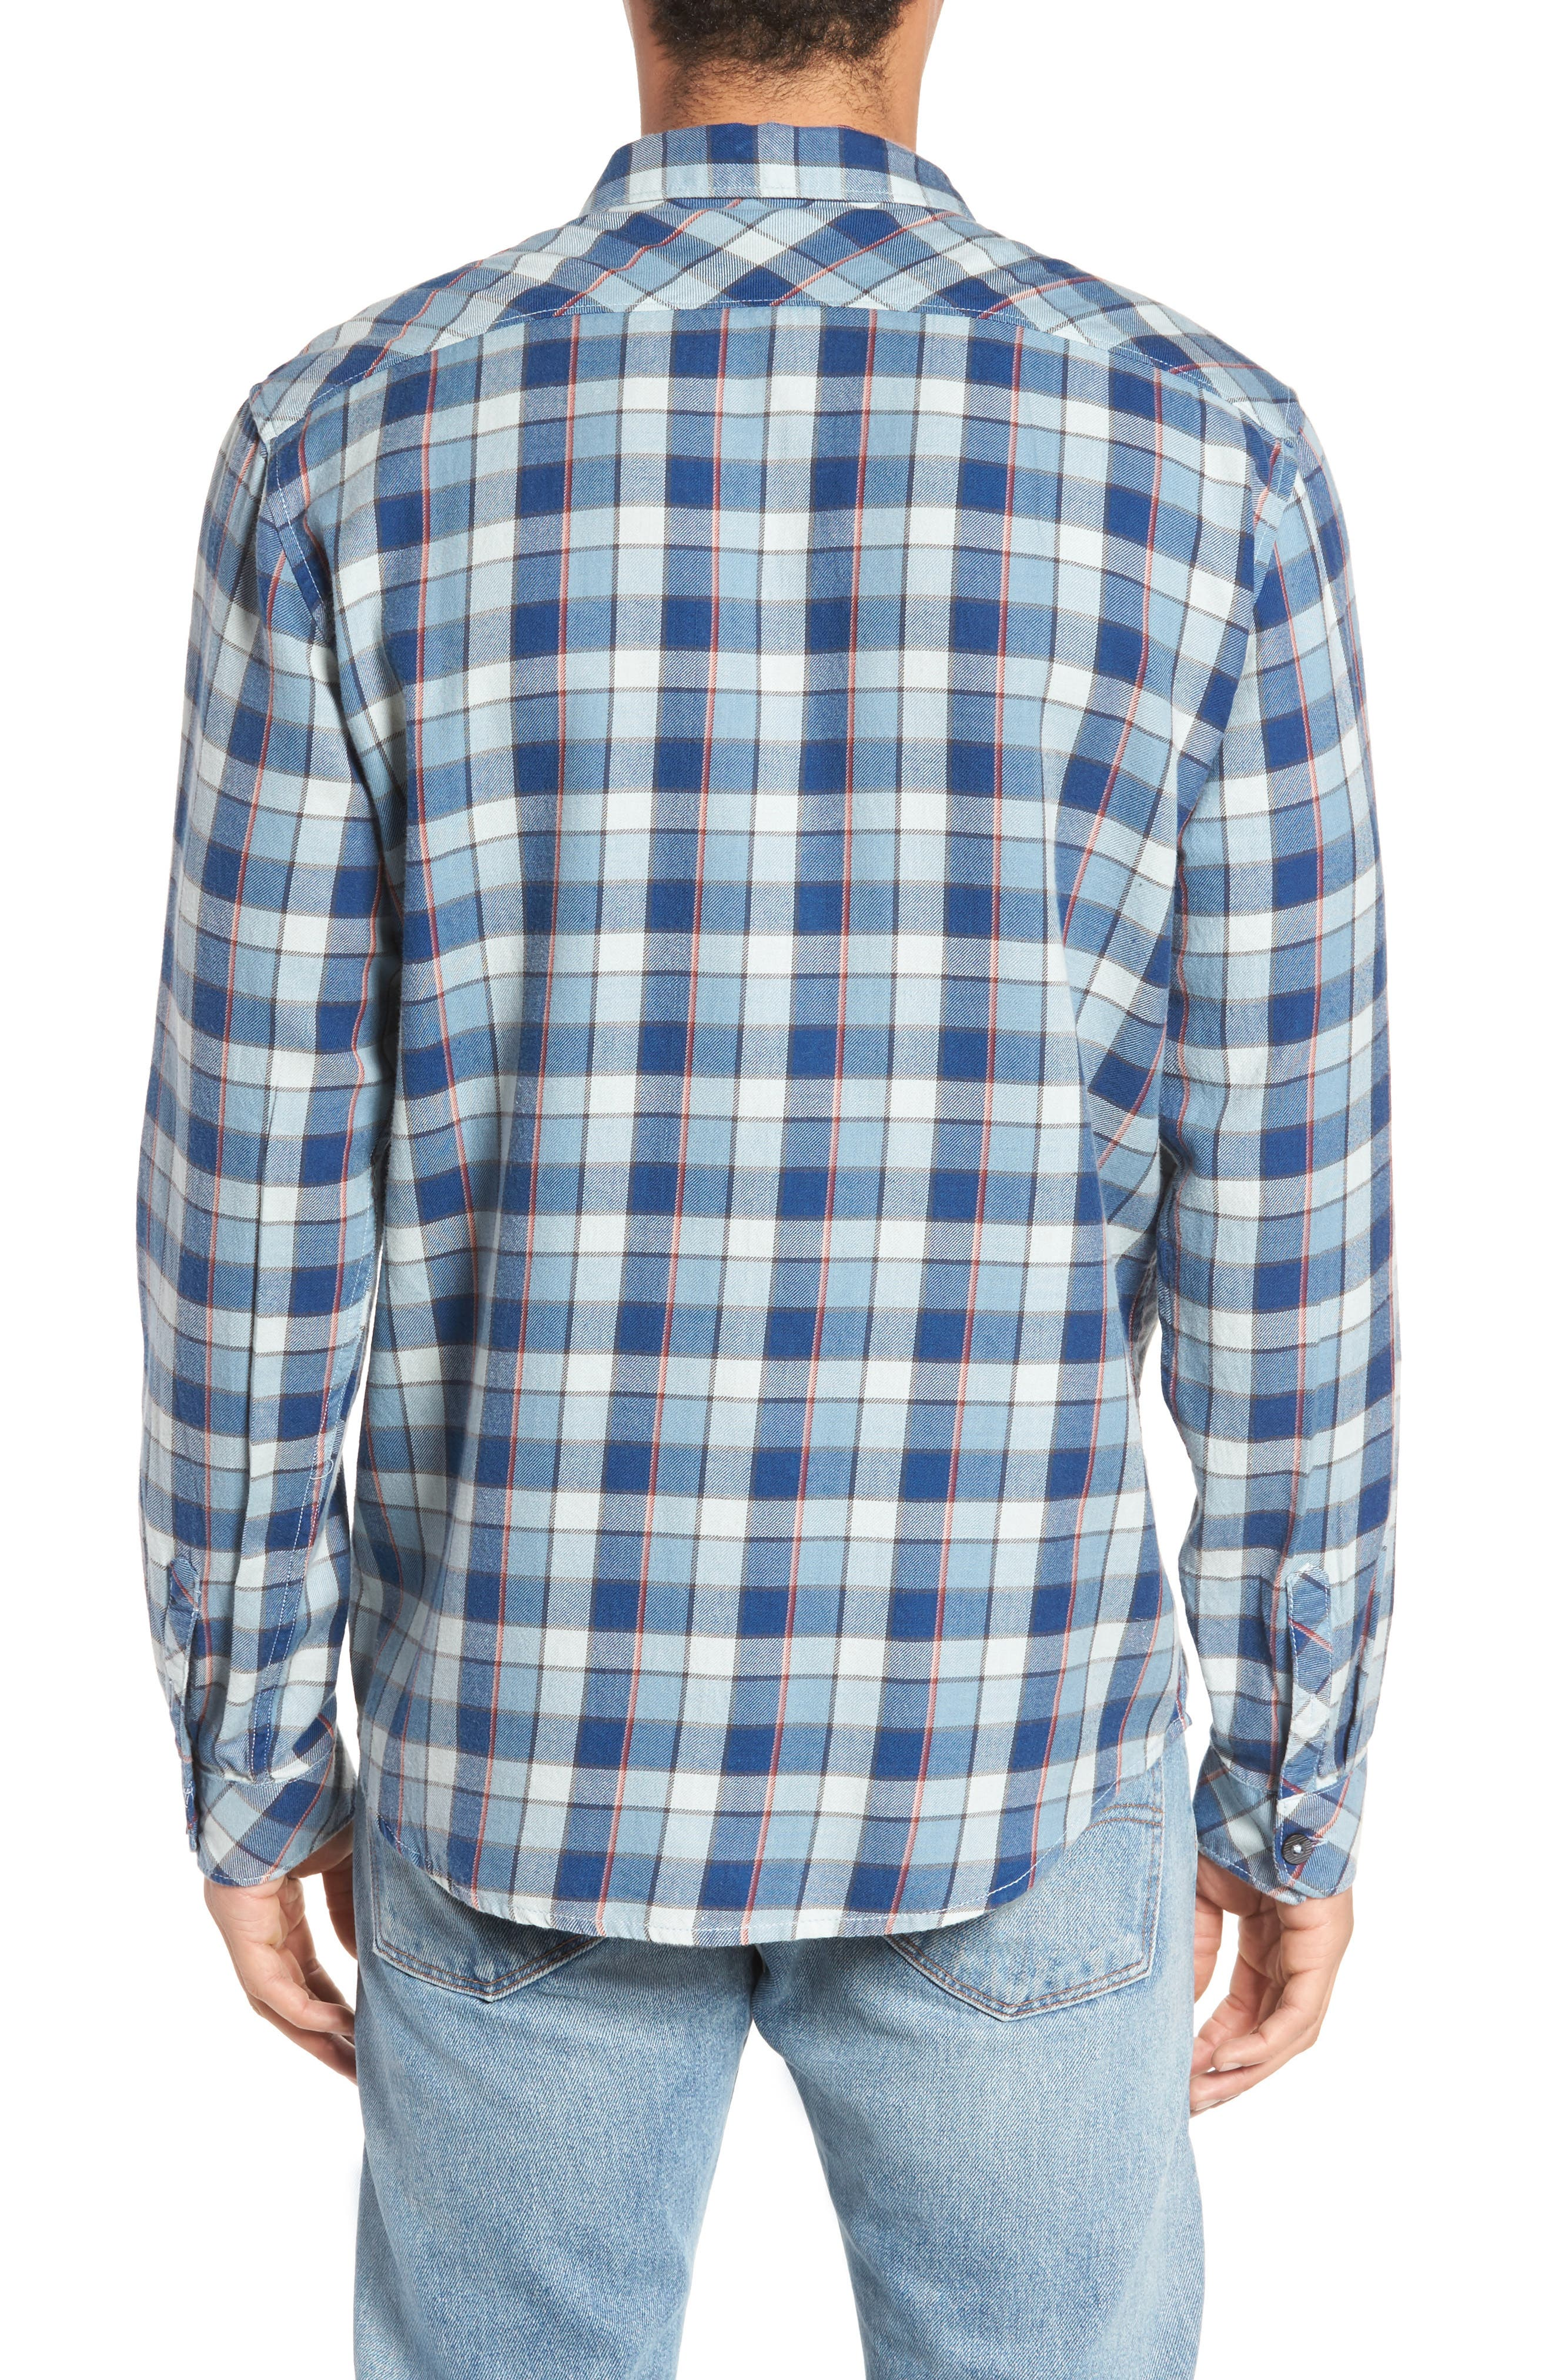 Bilabong Freemont Flannel Shirt,                             Alternate thumbnail 2, color,                             428